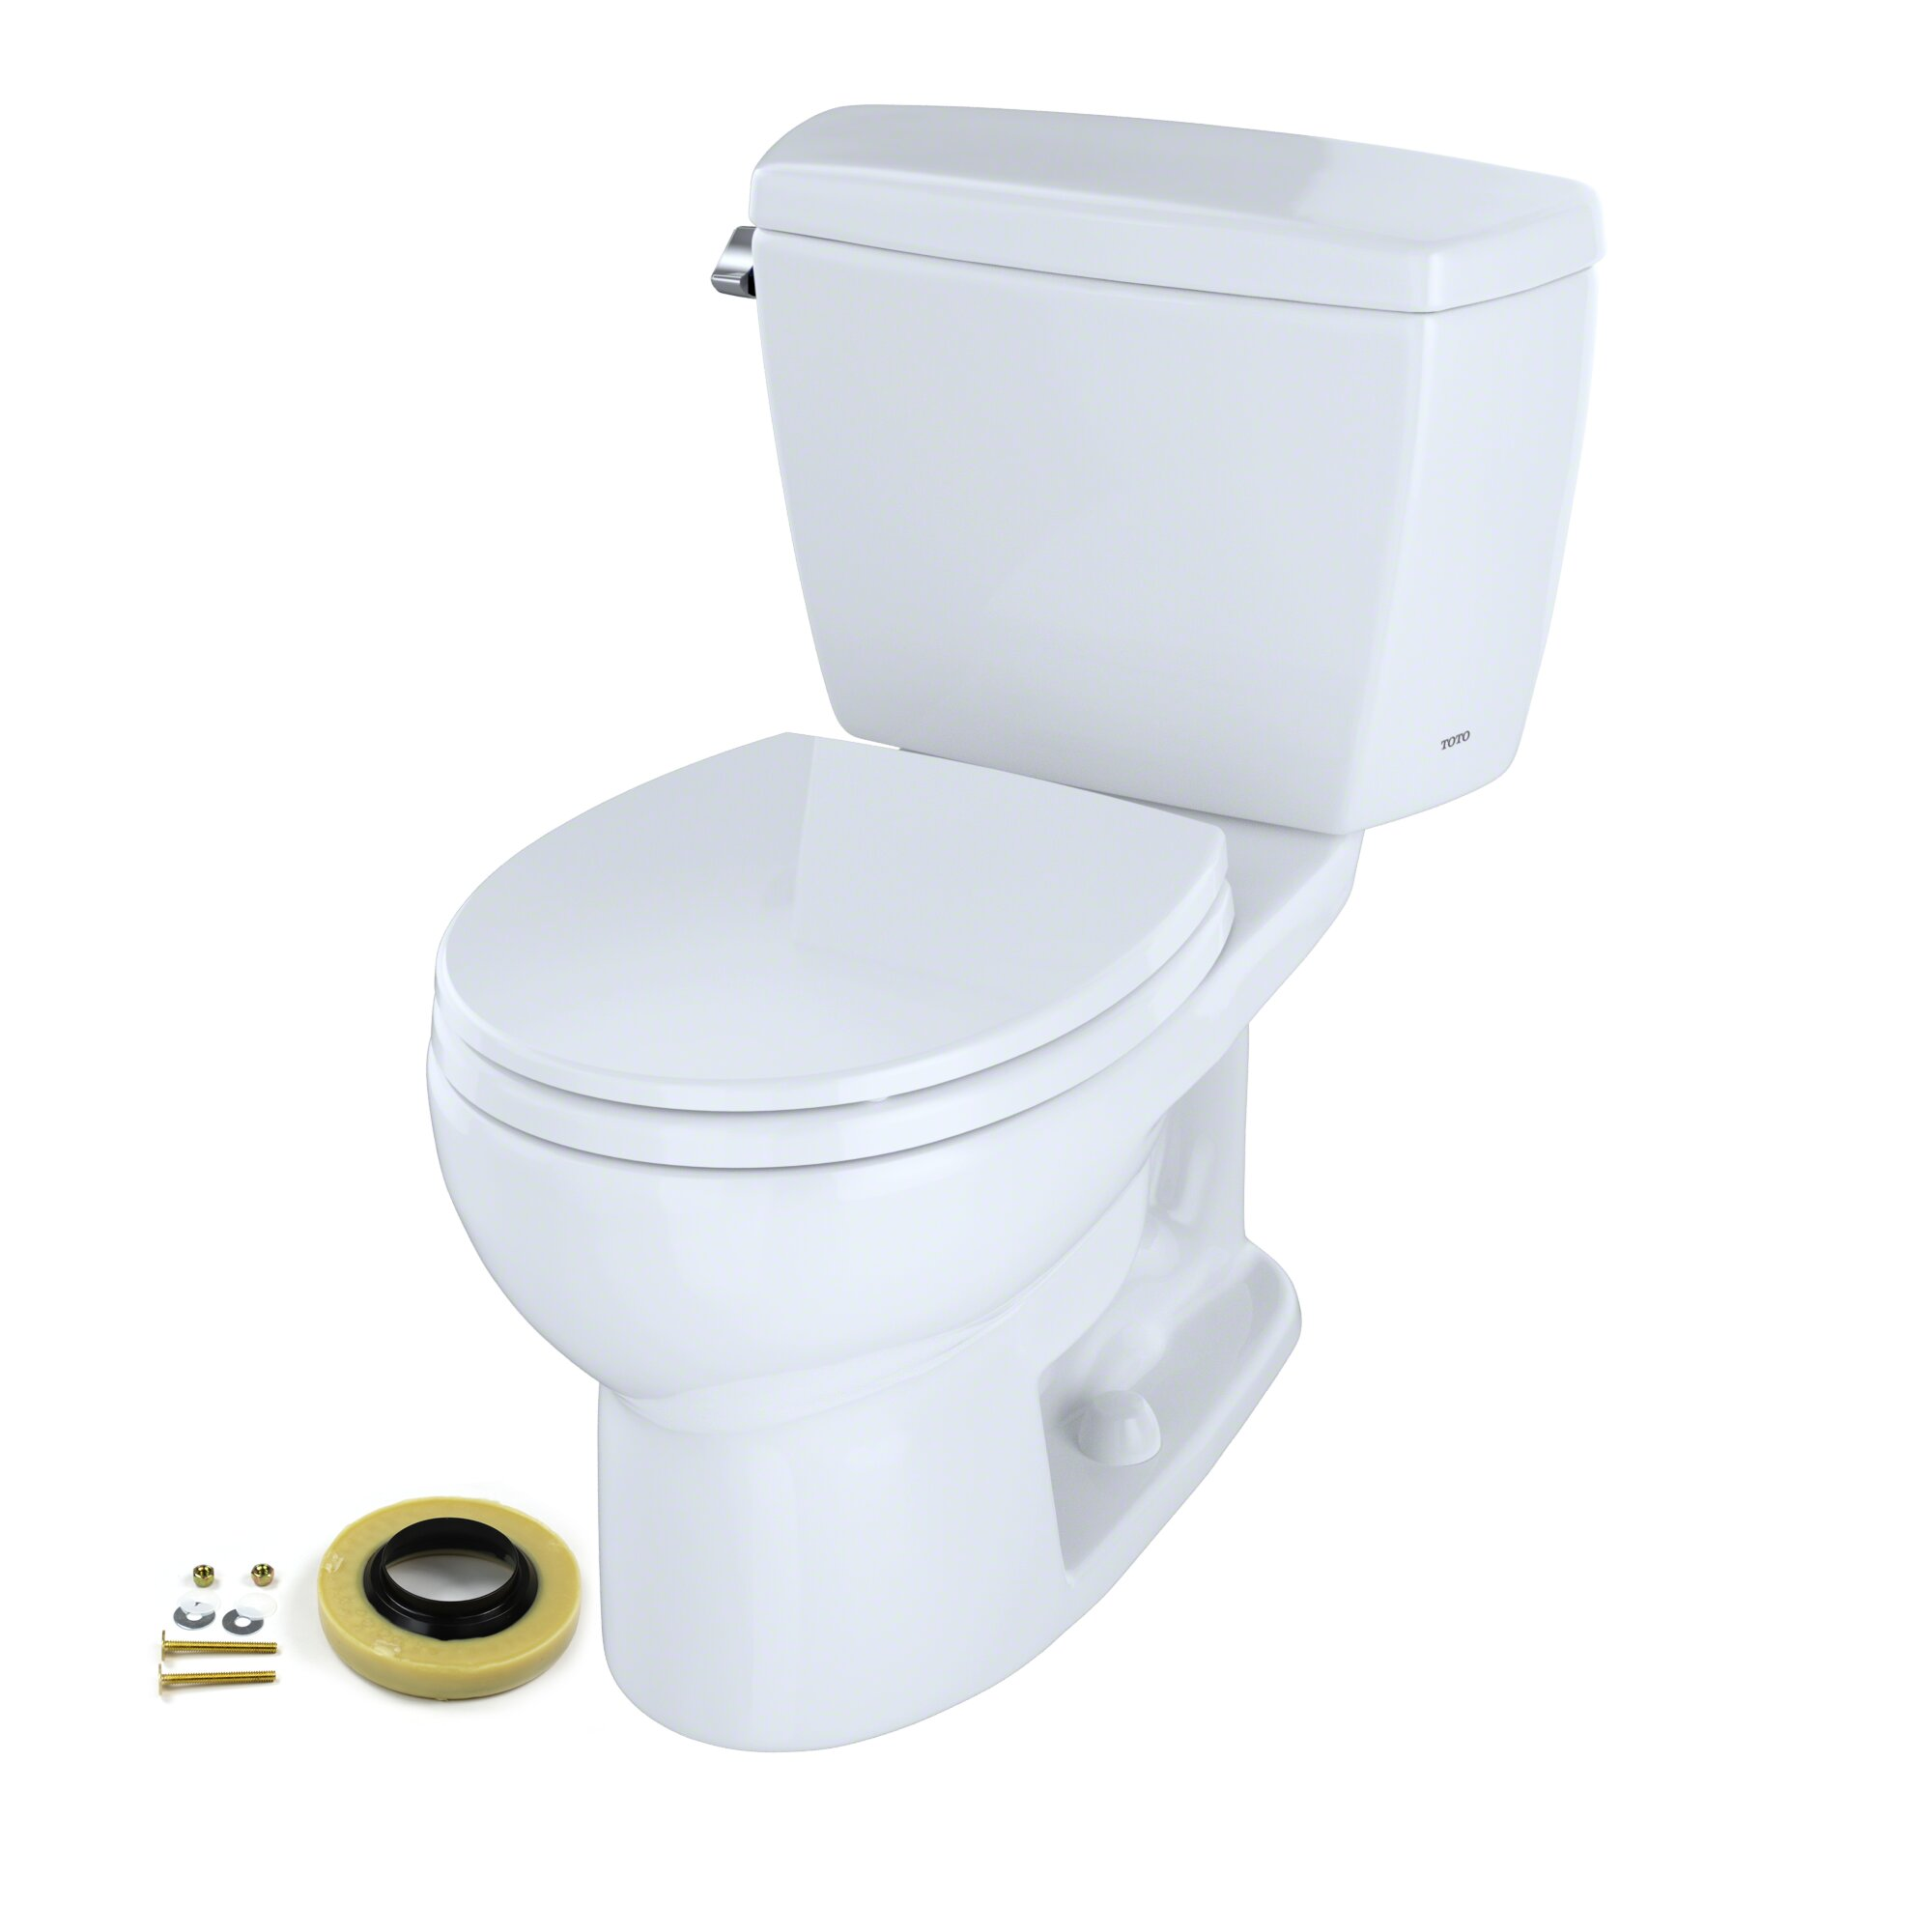 Groovy Drake Dual Flush Round Two Piece Toilet With Bidet Seat Wax Ring And Toilet Mounting Bolts Pdpeps Interior Chair Design Pdpepsorg